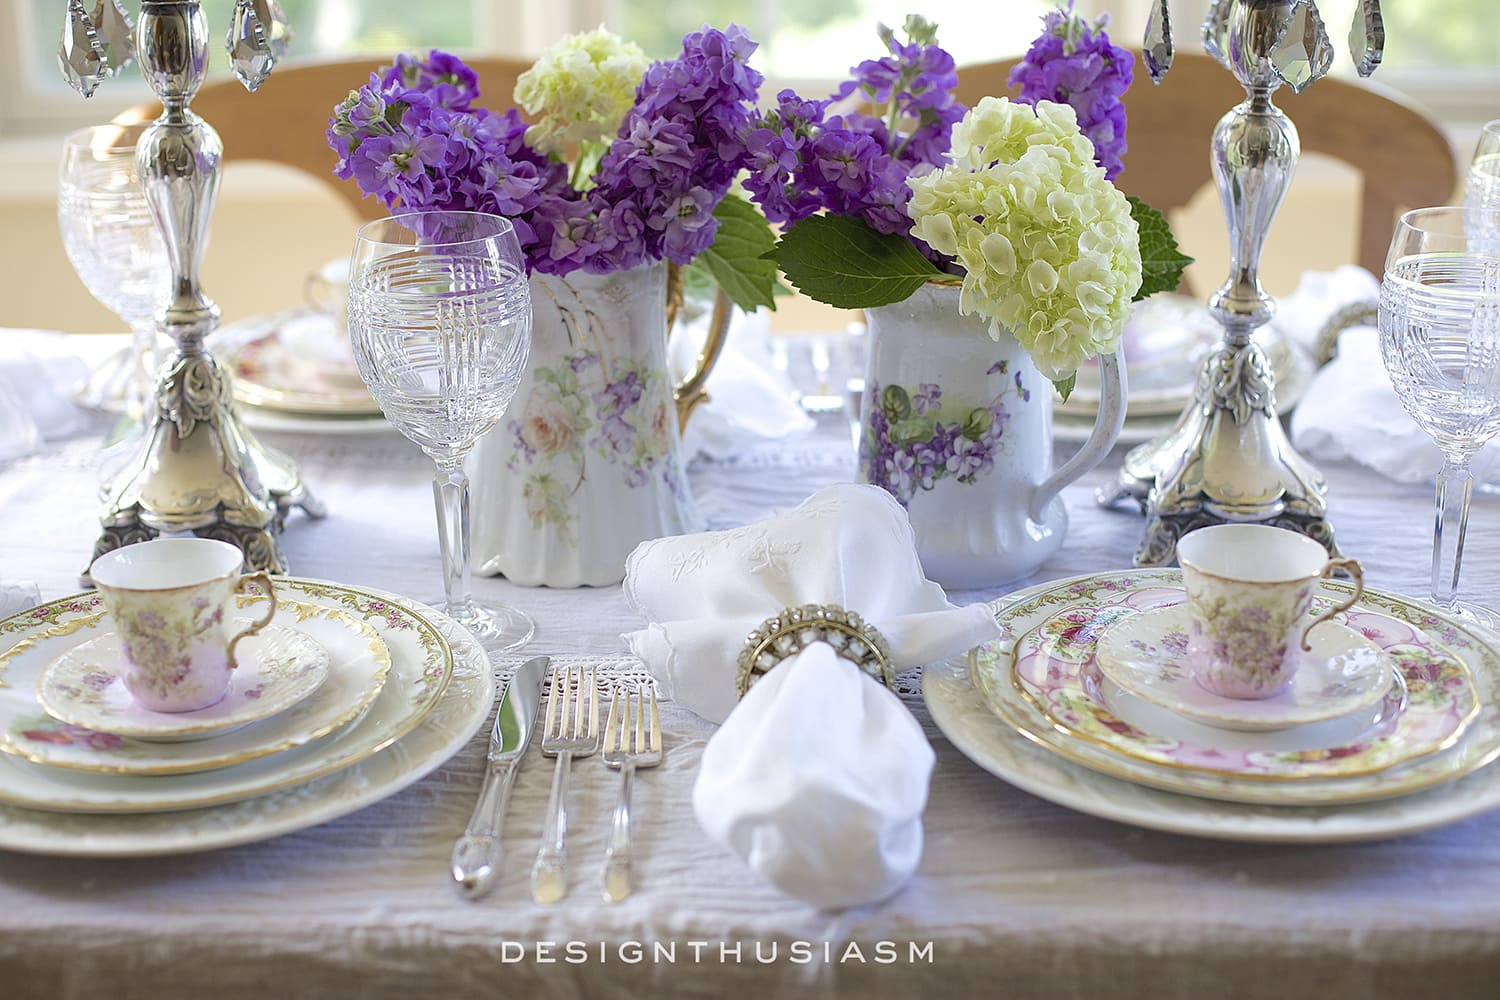 How to set a beautiful table with vintage china | Designthusiasm.com